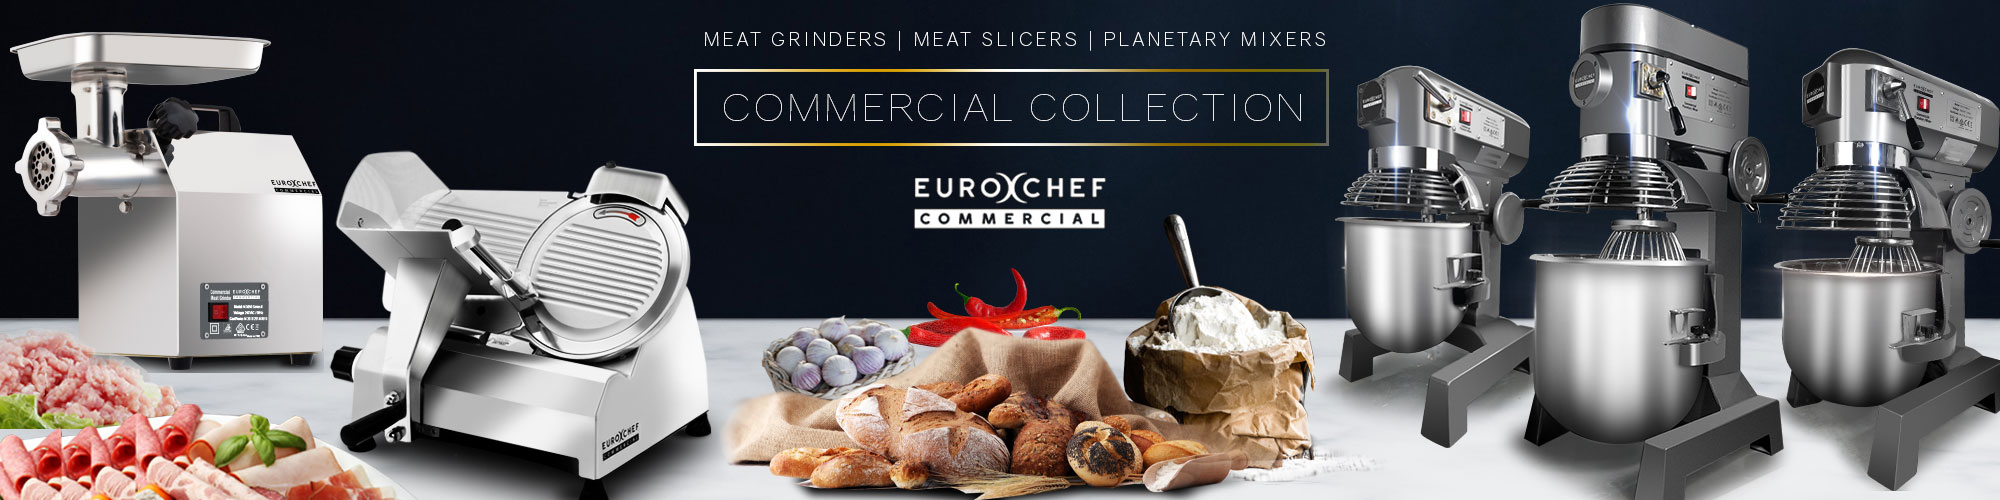 EuroChef Commercial Collection